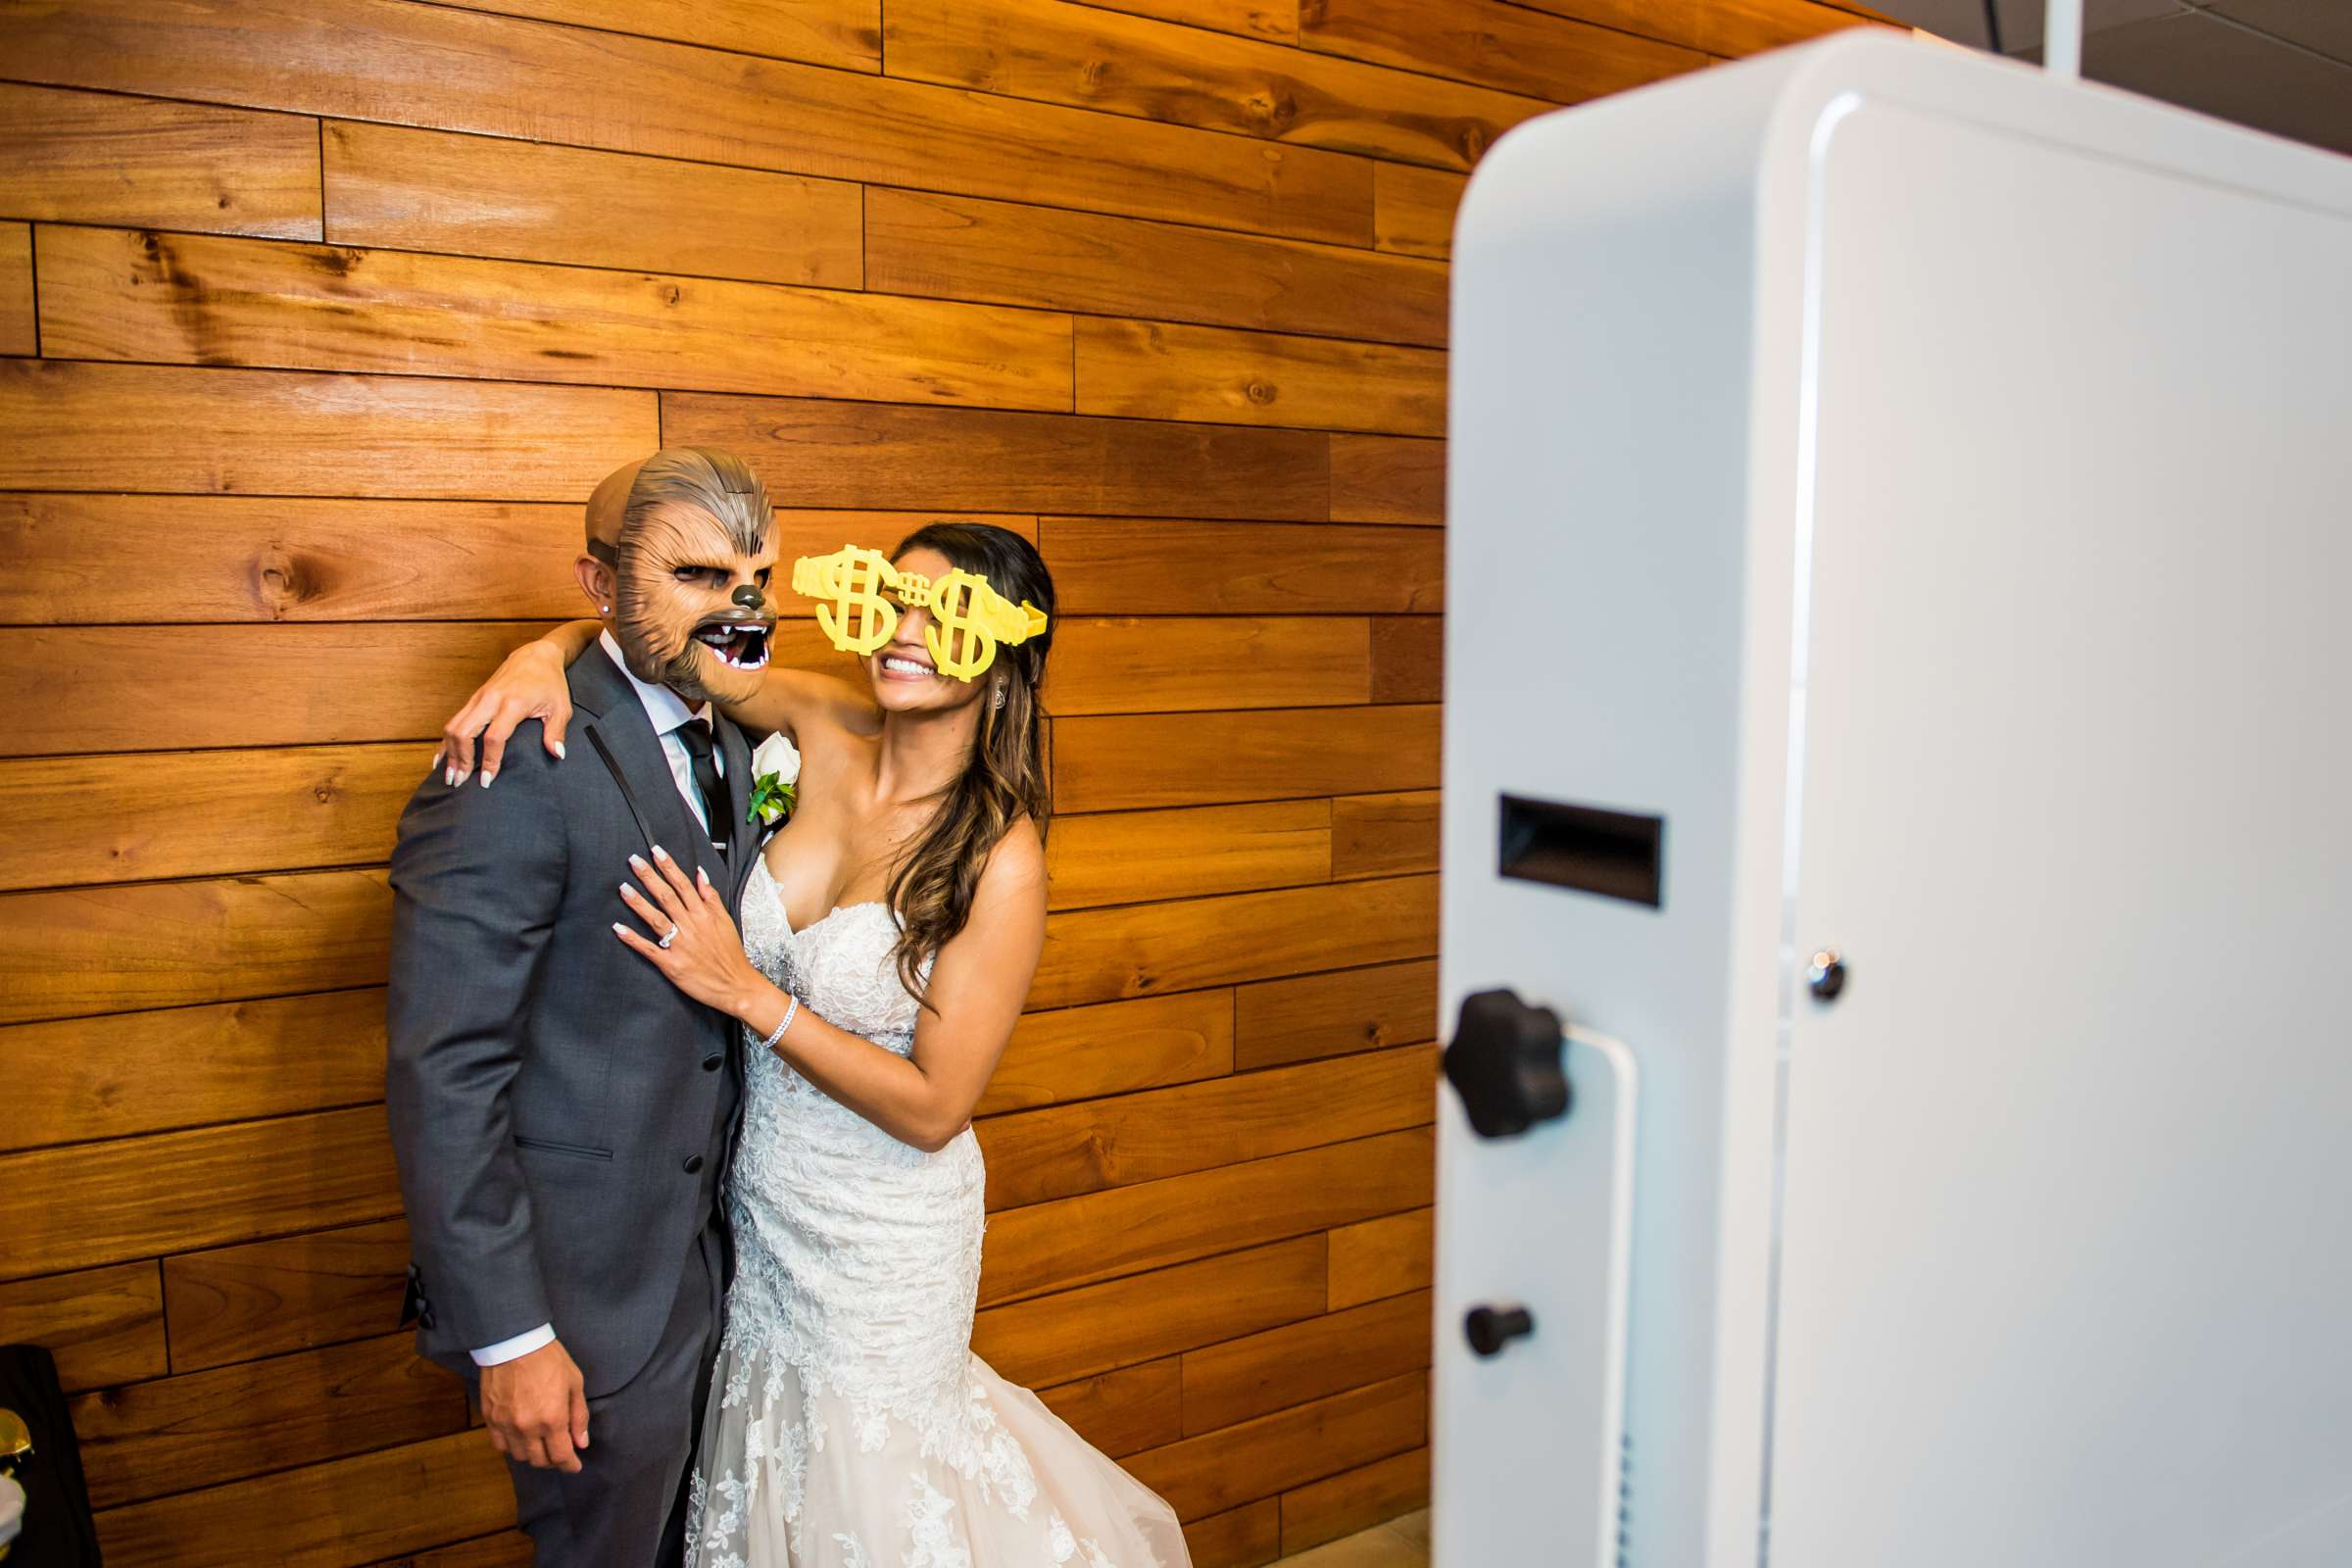 Scripps Seaside Forum Wedding coordinated by Lavish Weddings, Cindy and Justin Wedding Photo #381857 by True Photography